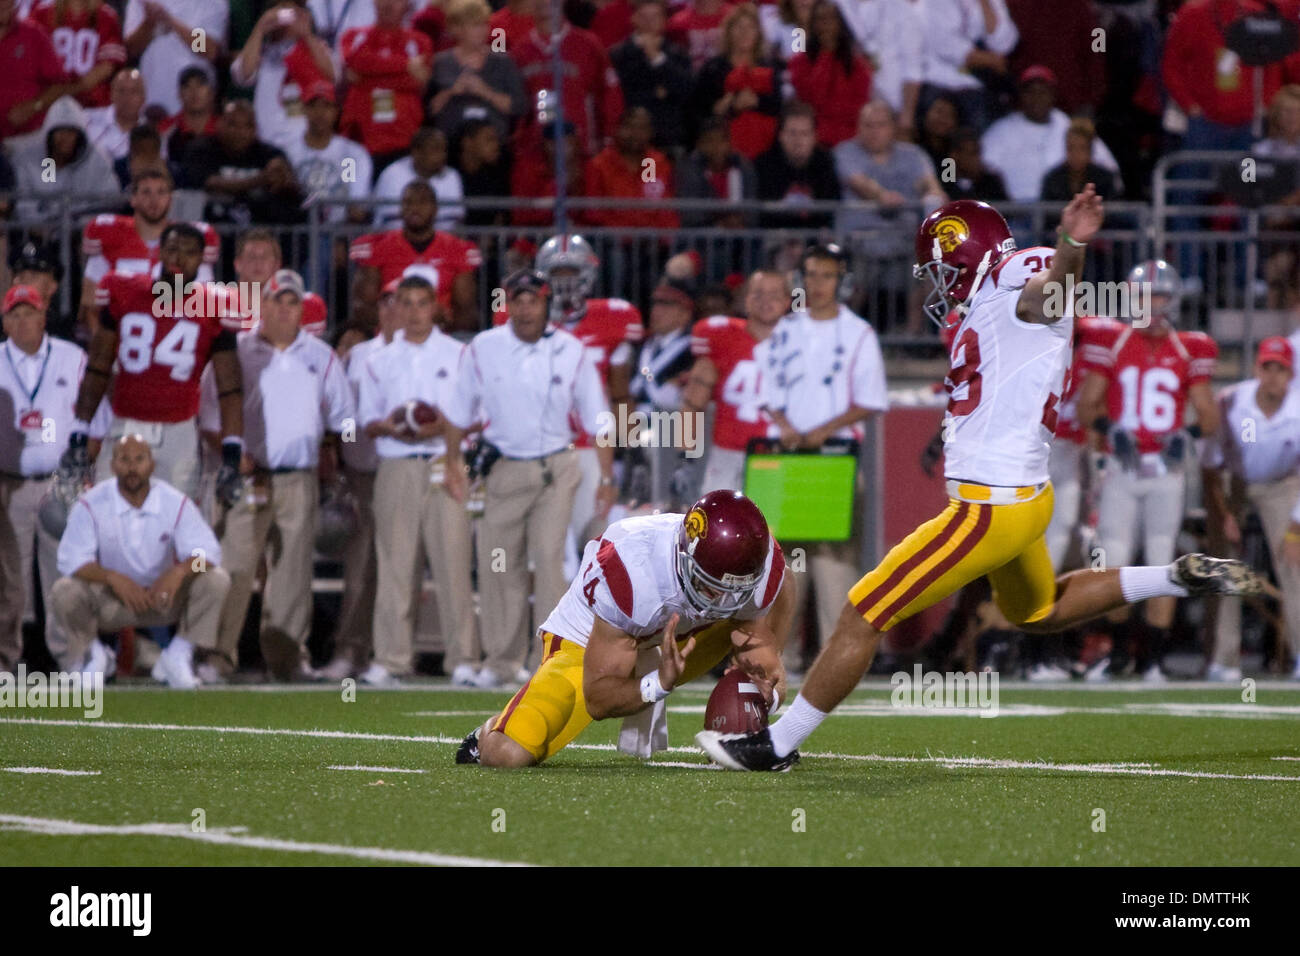 12 September 2009:  USC Trojans Jordan Congdon (38) attempts a field goal out of the hold of Garrett Green (14) during the NCAA college football game between the USC Trojans and the Ohio State Buckeyes at Ohio Stadium in Columbus, Ohio.  CongdonÕs field goal was no good but the #3 USC Trojans rallied to defeat #7 Ohio State 18-15 before a record crowd of 106,033 fans at Ohio Stadi - Stock Image